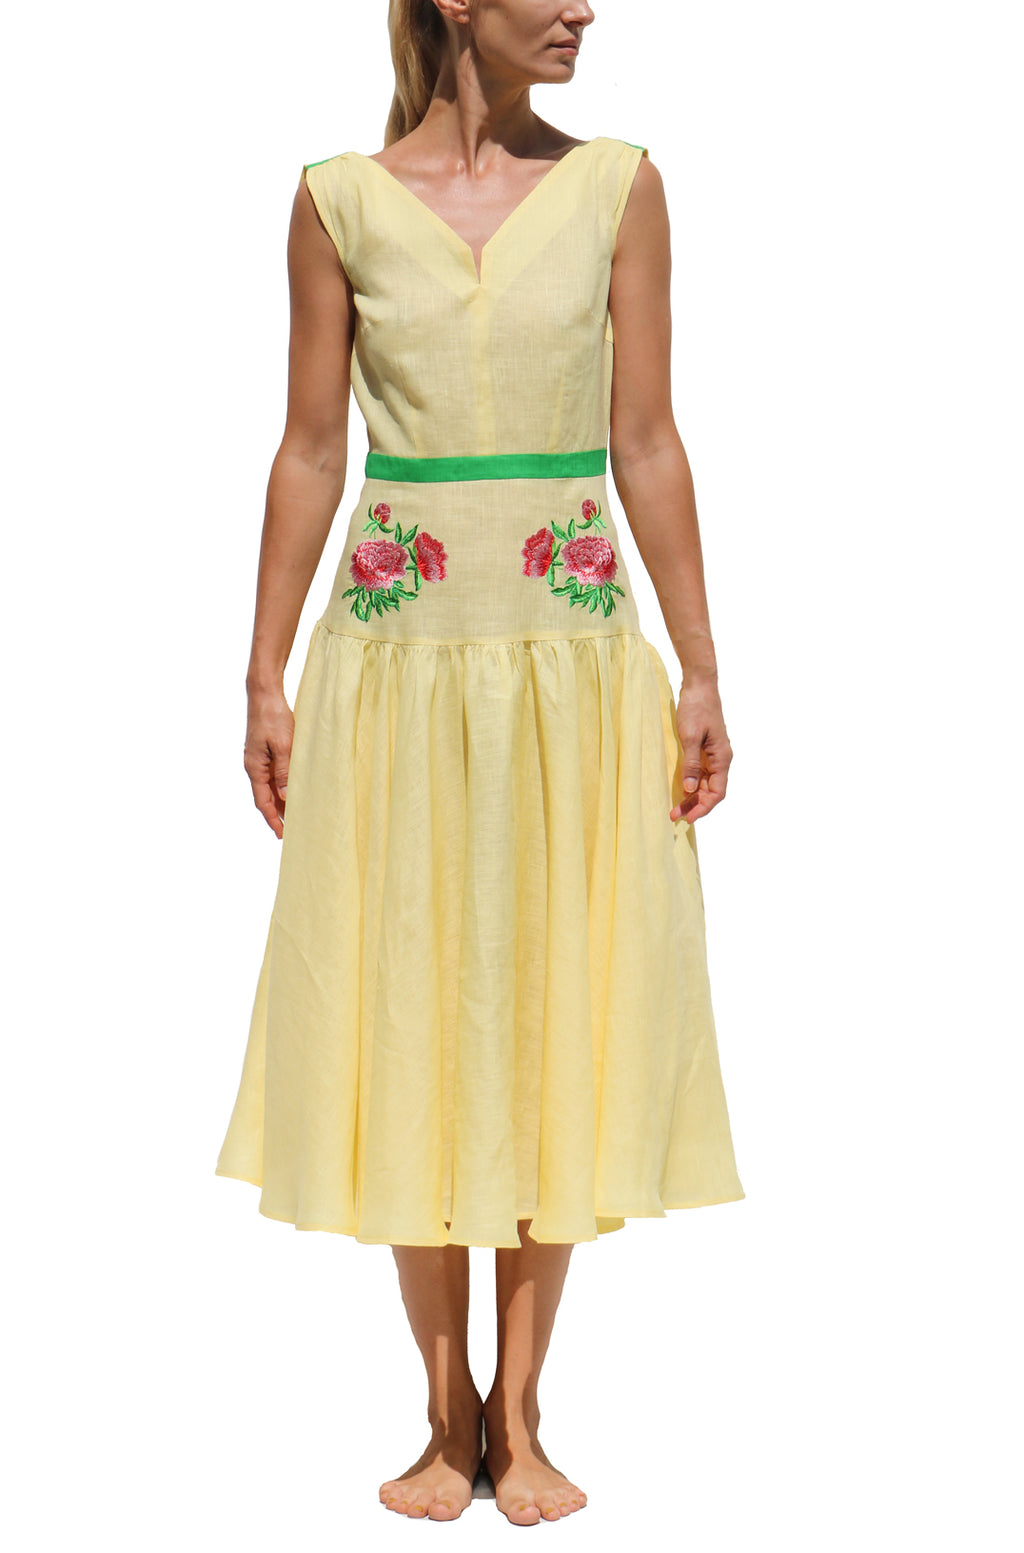 FANM MON Dafne Midi Embroidered Yellow Linen Dress